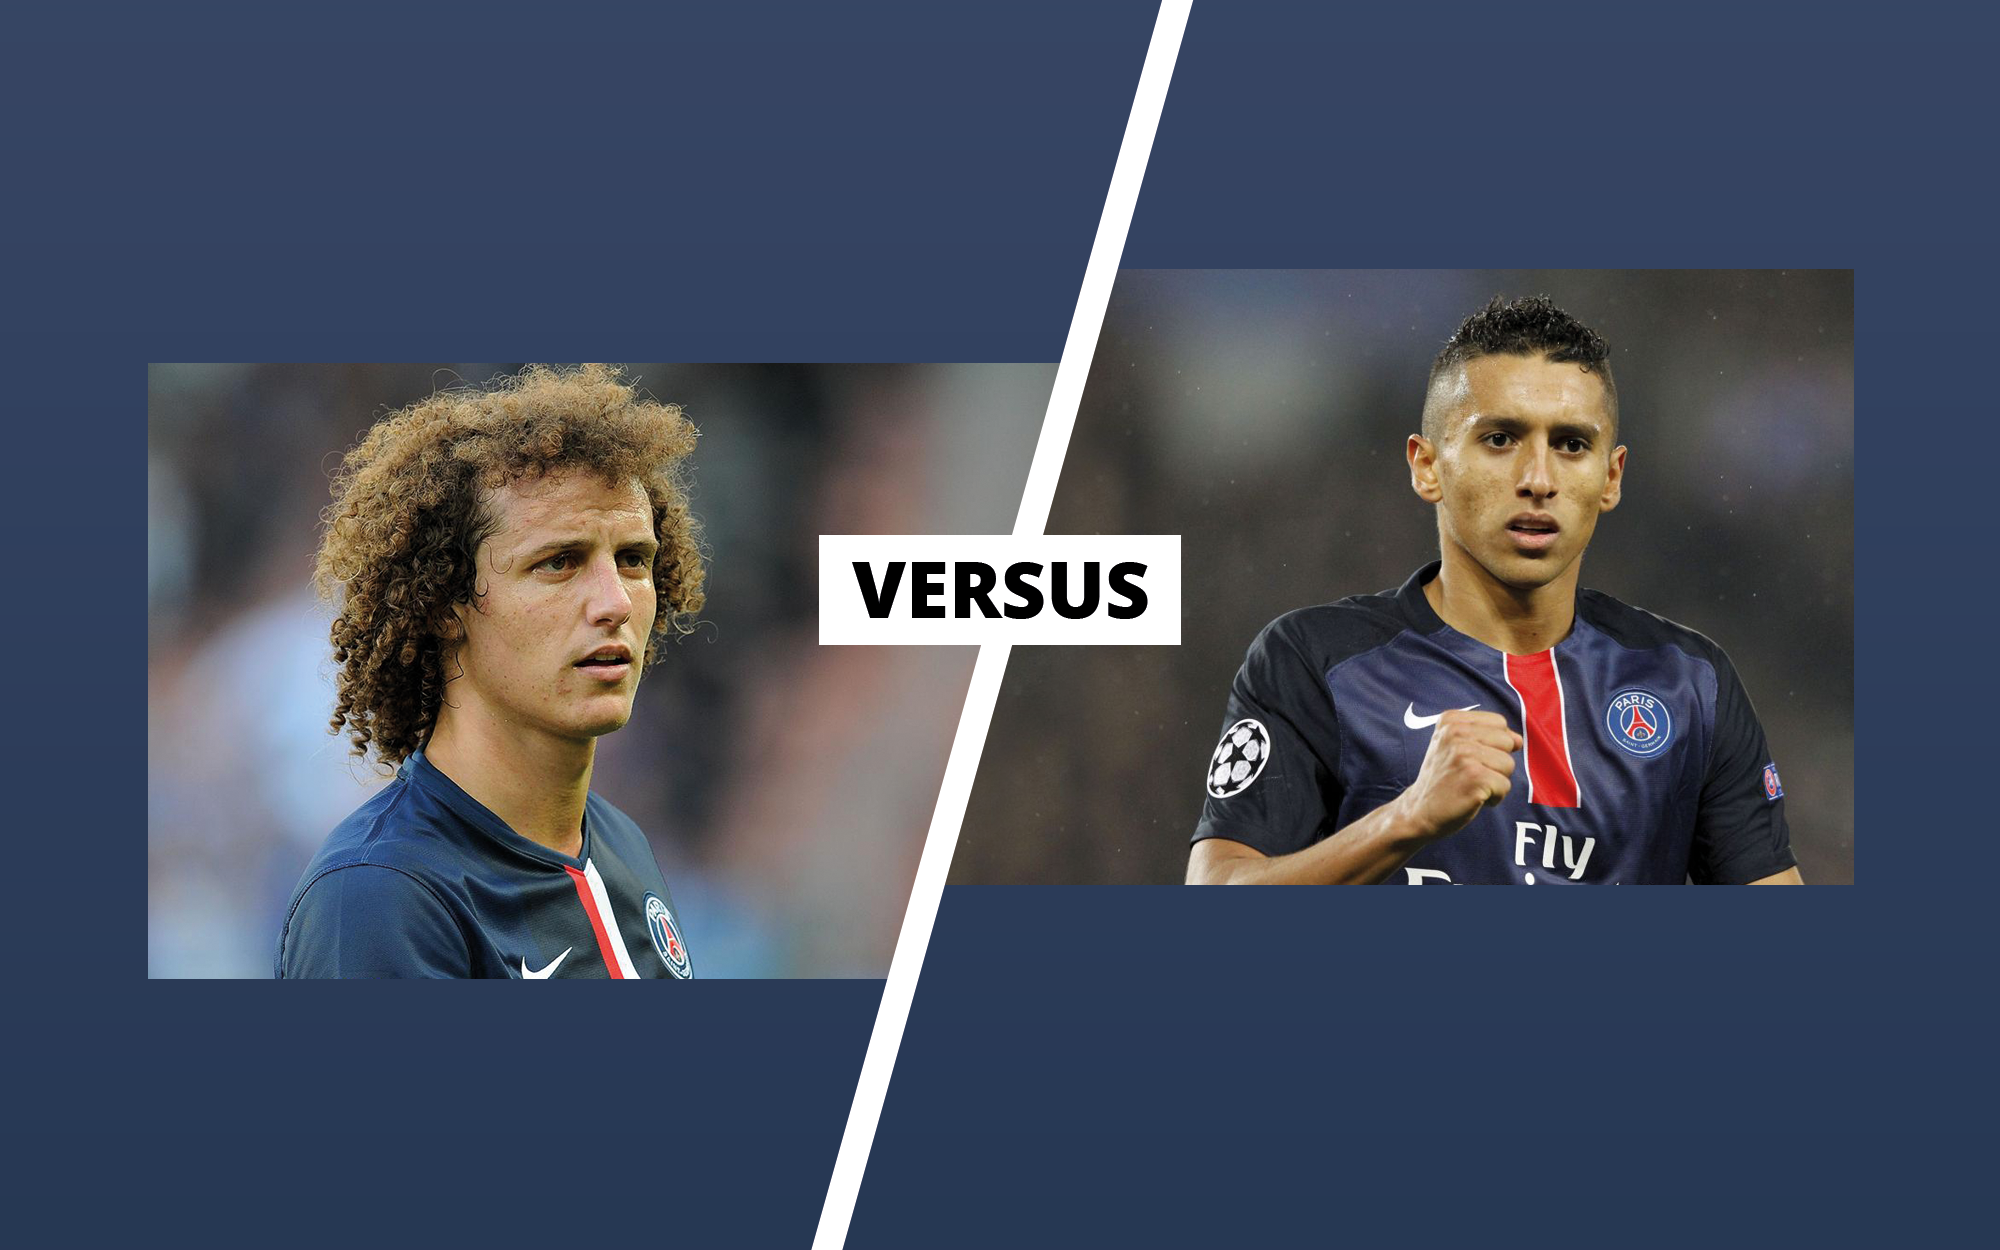 Battle #1 – David Luiz vs Marquinhos